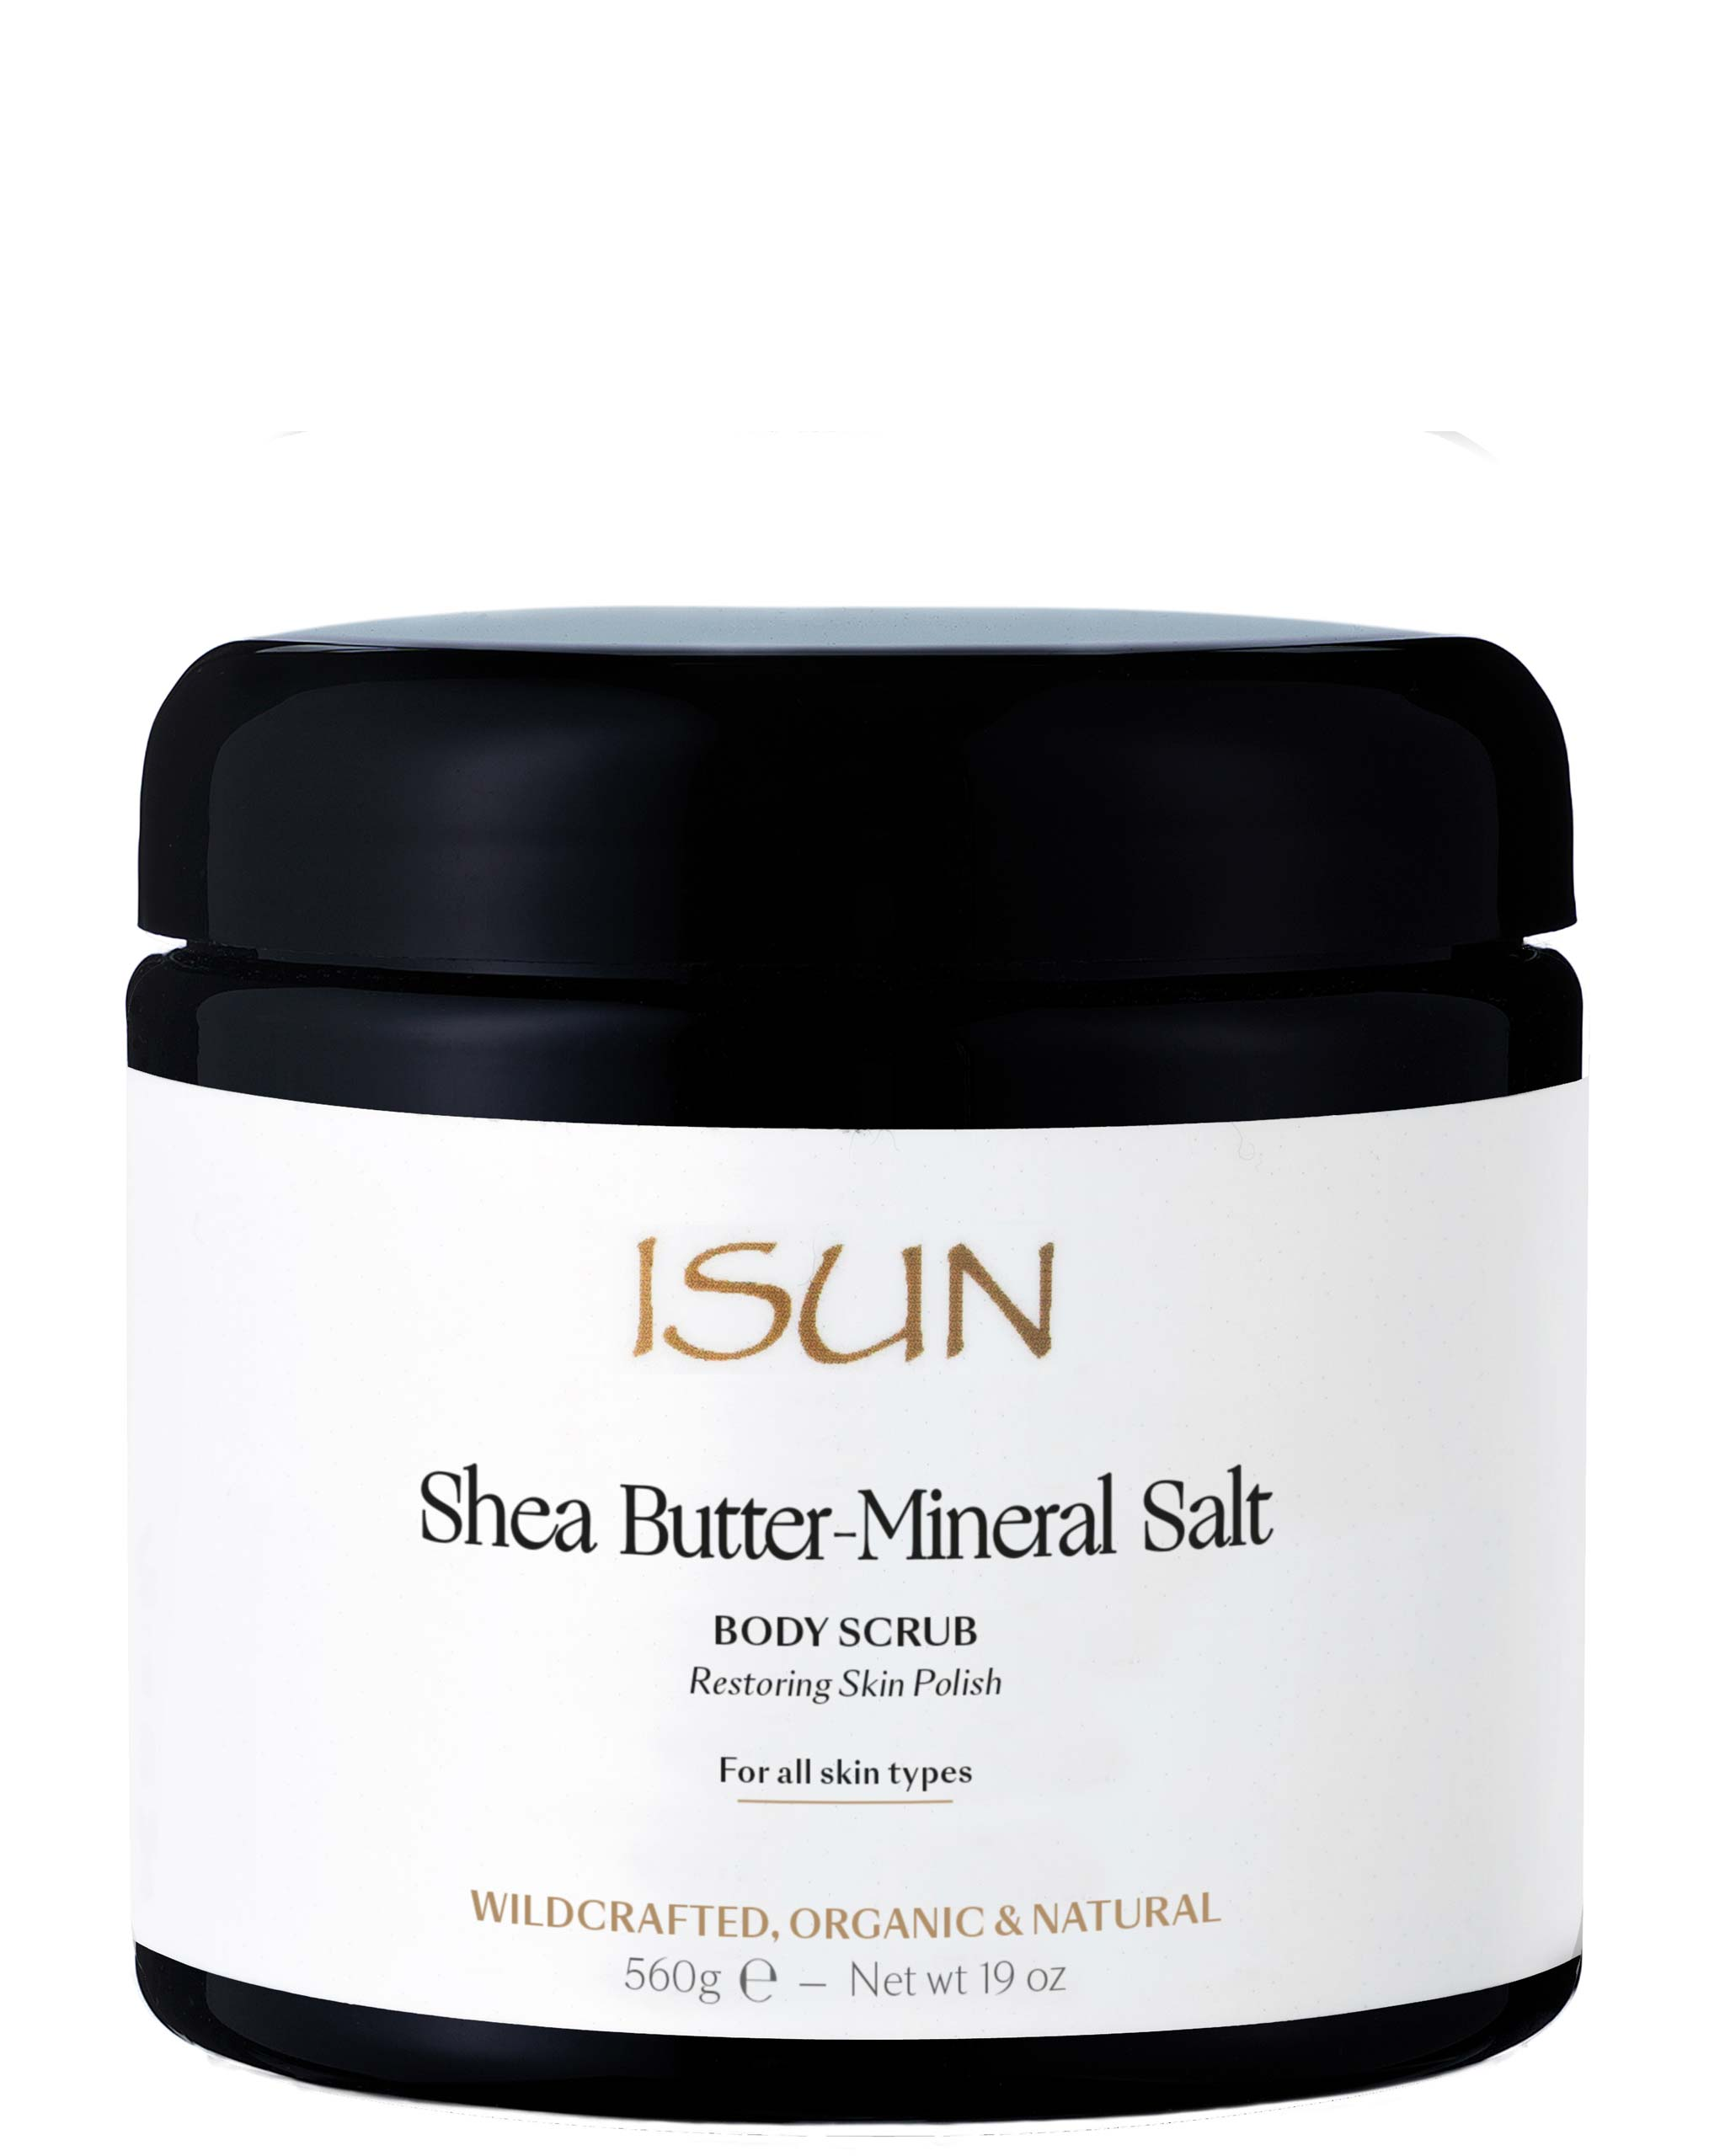 ISUN Shea Butter-Mineral Salt / Body Scrub 480ML, ISUN - ShopConsciousBeauty.com